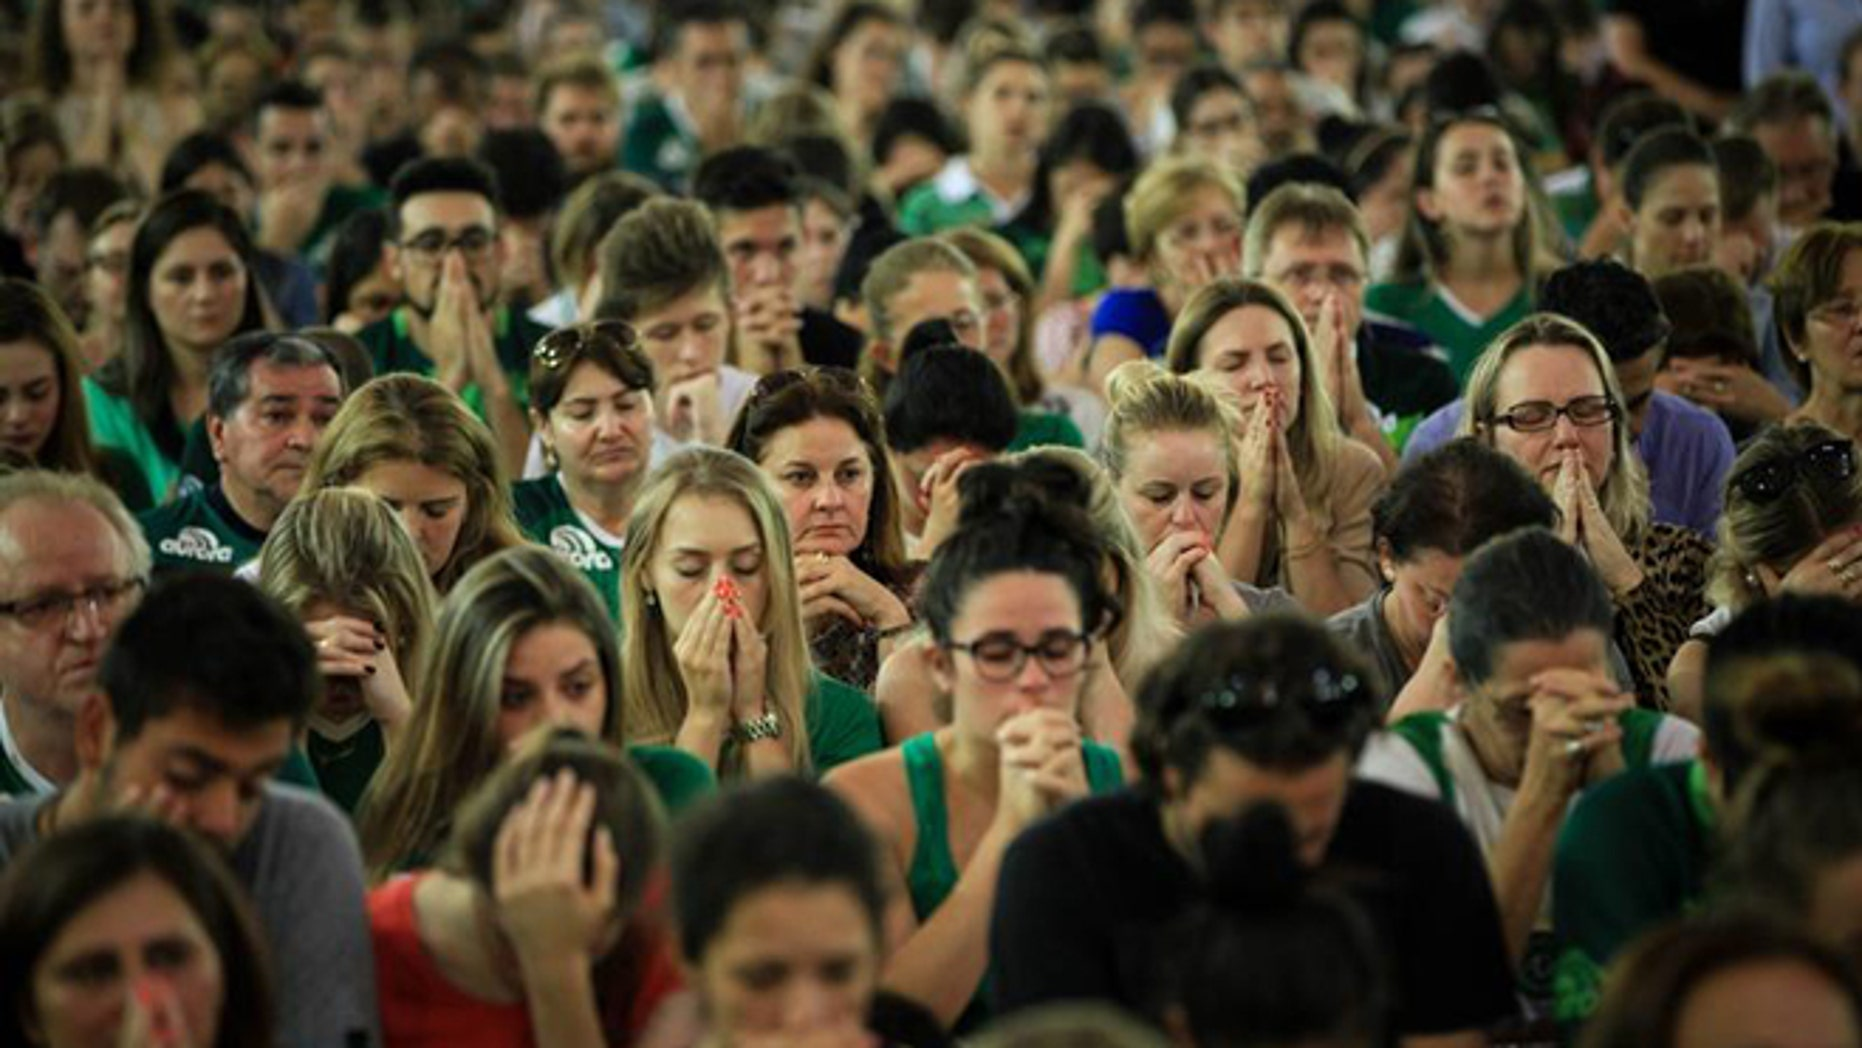 Chapecoense fans attend a mass in Chapeco, Brazil, 29 November 2016. According to reports, 71 people died when an aircraft crashed late 28 November 2016 with 77 people on board, including players of the Brazilian soccer club Chapecoense. Four people registered on the passengers list did not board the plane. The plane crashed in a mountainous area outside Medellin, Colombia as it was approaching the Jose Maria Cordoba airport. The cause of the incident is as yet uknown. Chapecoense were scheduled to play in the Copa Sudamericana final against Medellin's Atletico Nacional on 30 November 2016. (Photo: EPA/Fernando Bizerra Jr.)